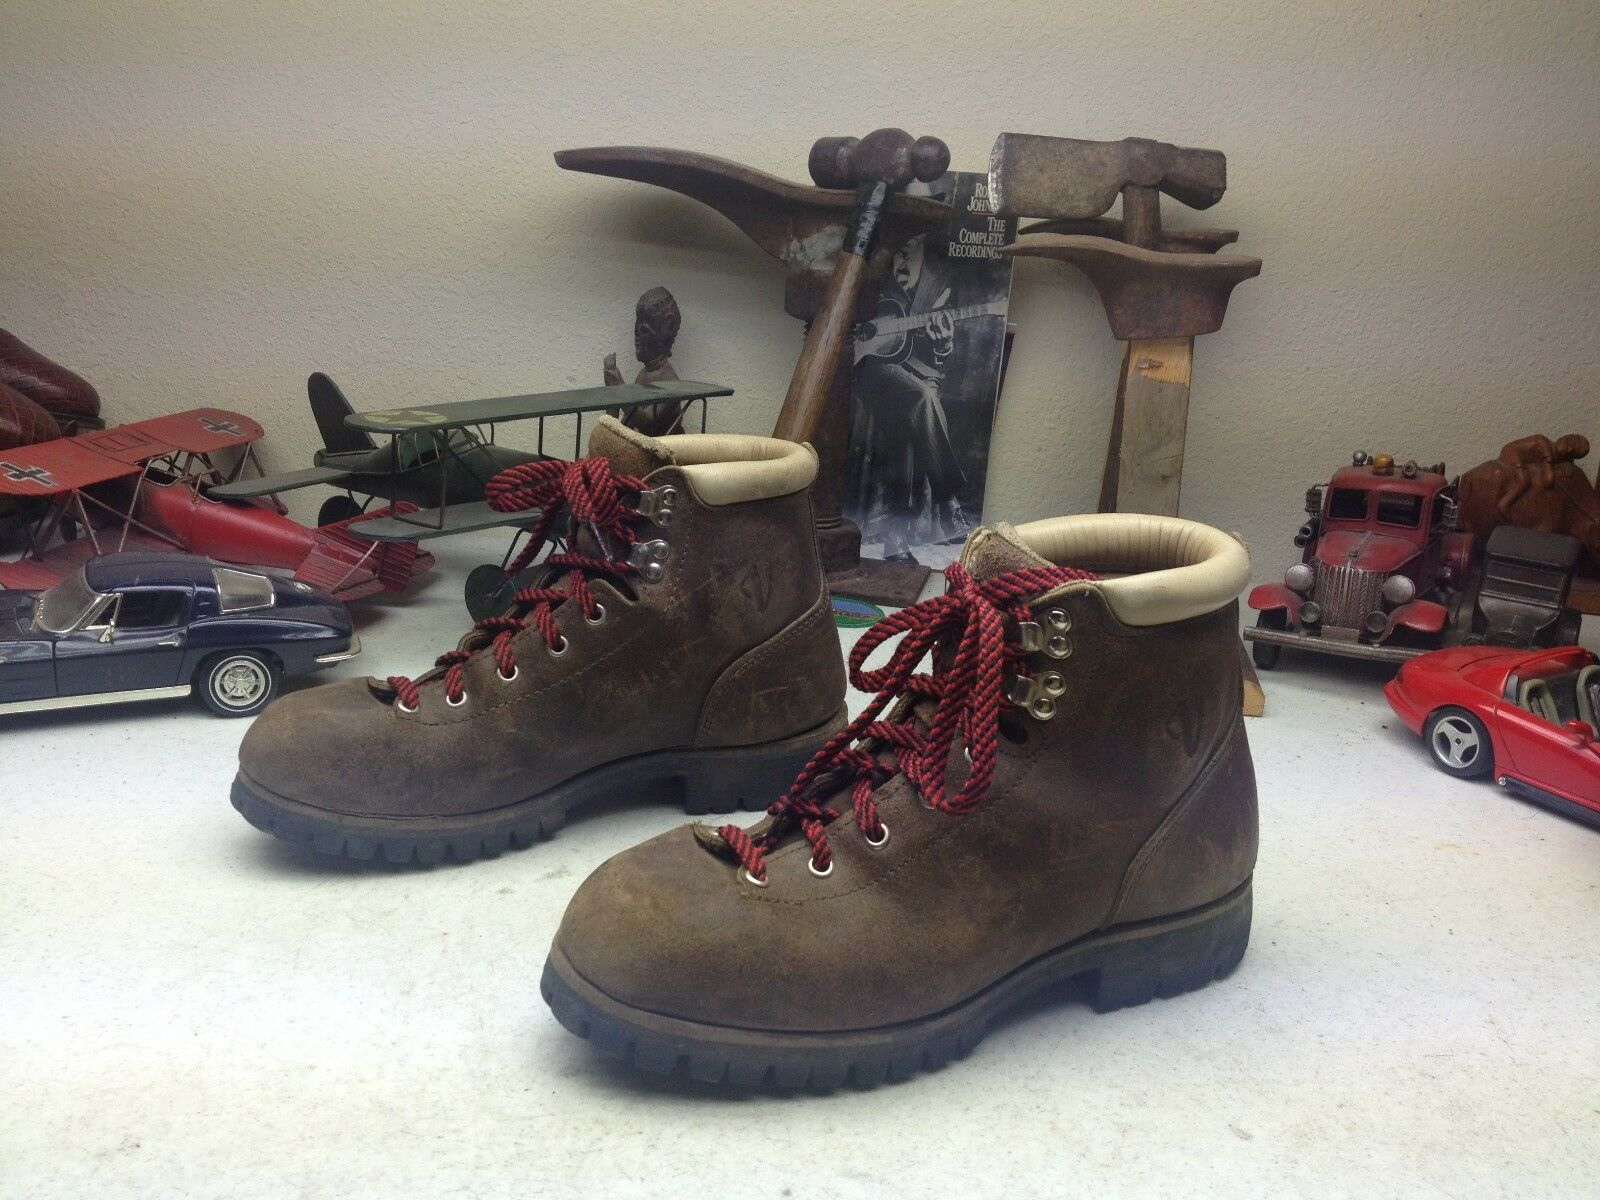 VINTAGE VASQUE LACE UP DISTRESSED BROWN MOUNTAIN TRAIL BOSS BOOTS 7.5 M